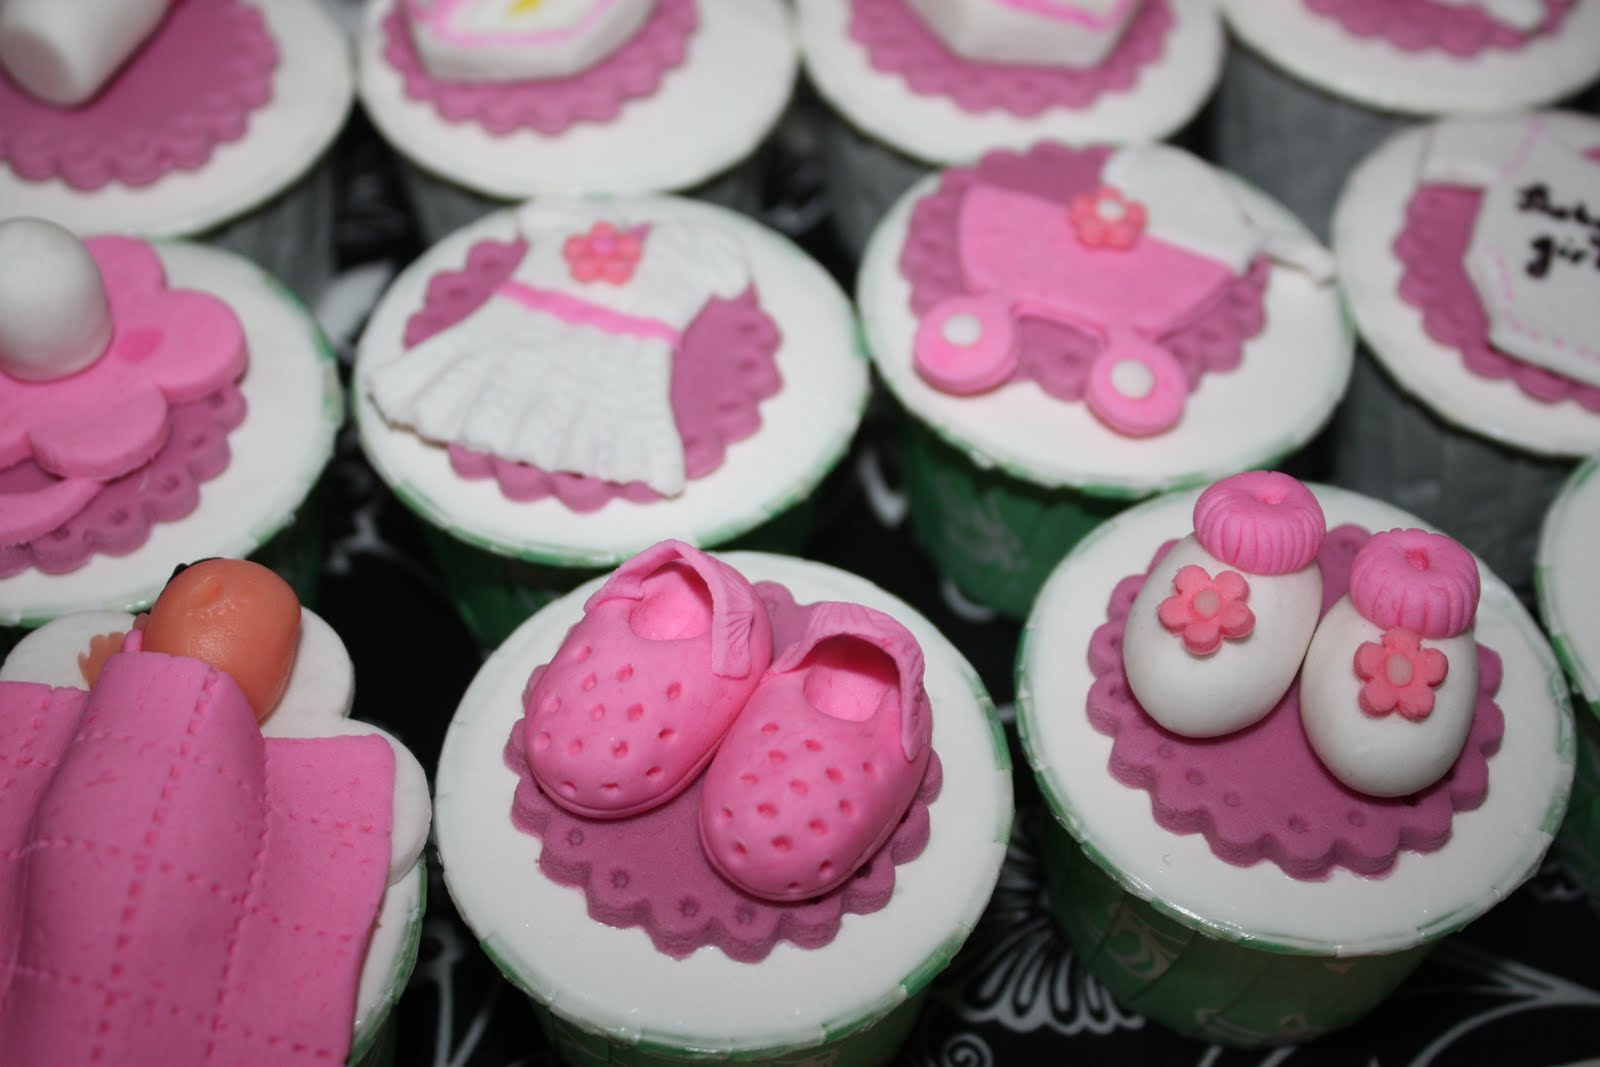 Baby shower cakes baby shower cupcakes recipes uk for Cupcake recipes for baby shower girl